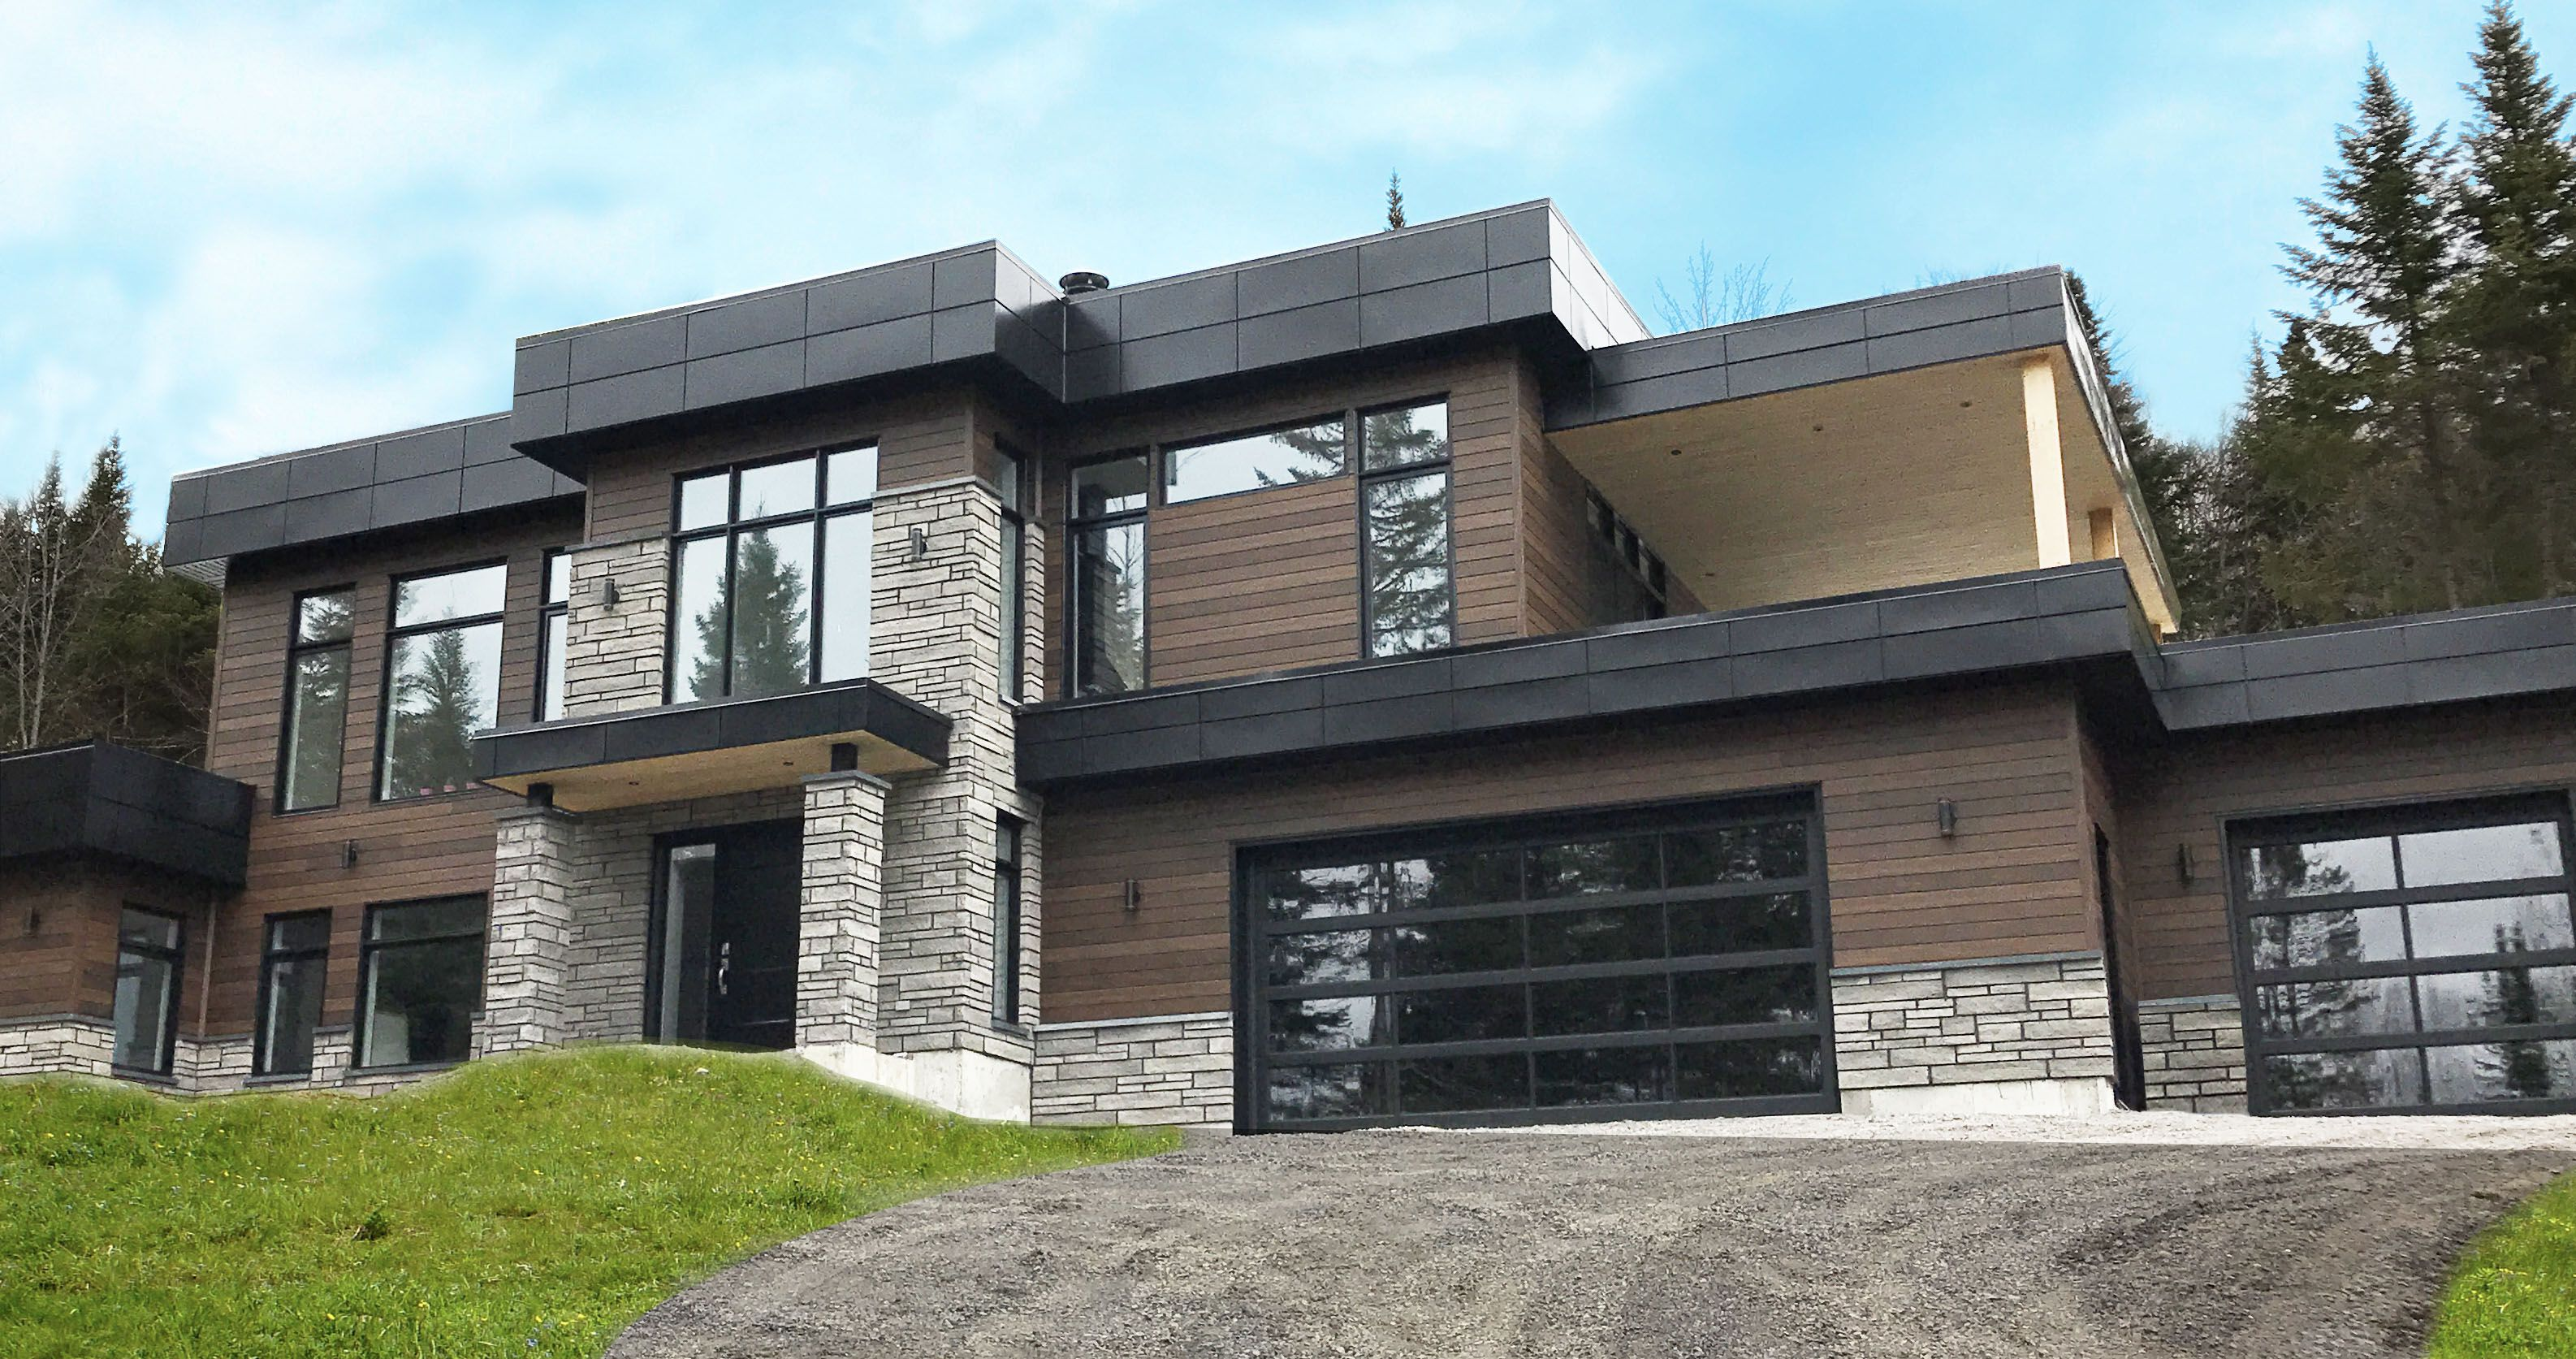 7 Popular Siding Materials To Consider: Create That Modern Look With Distinction Wood Grain Steel